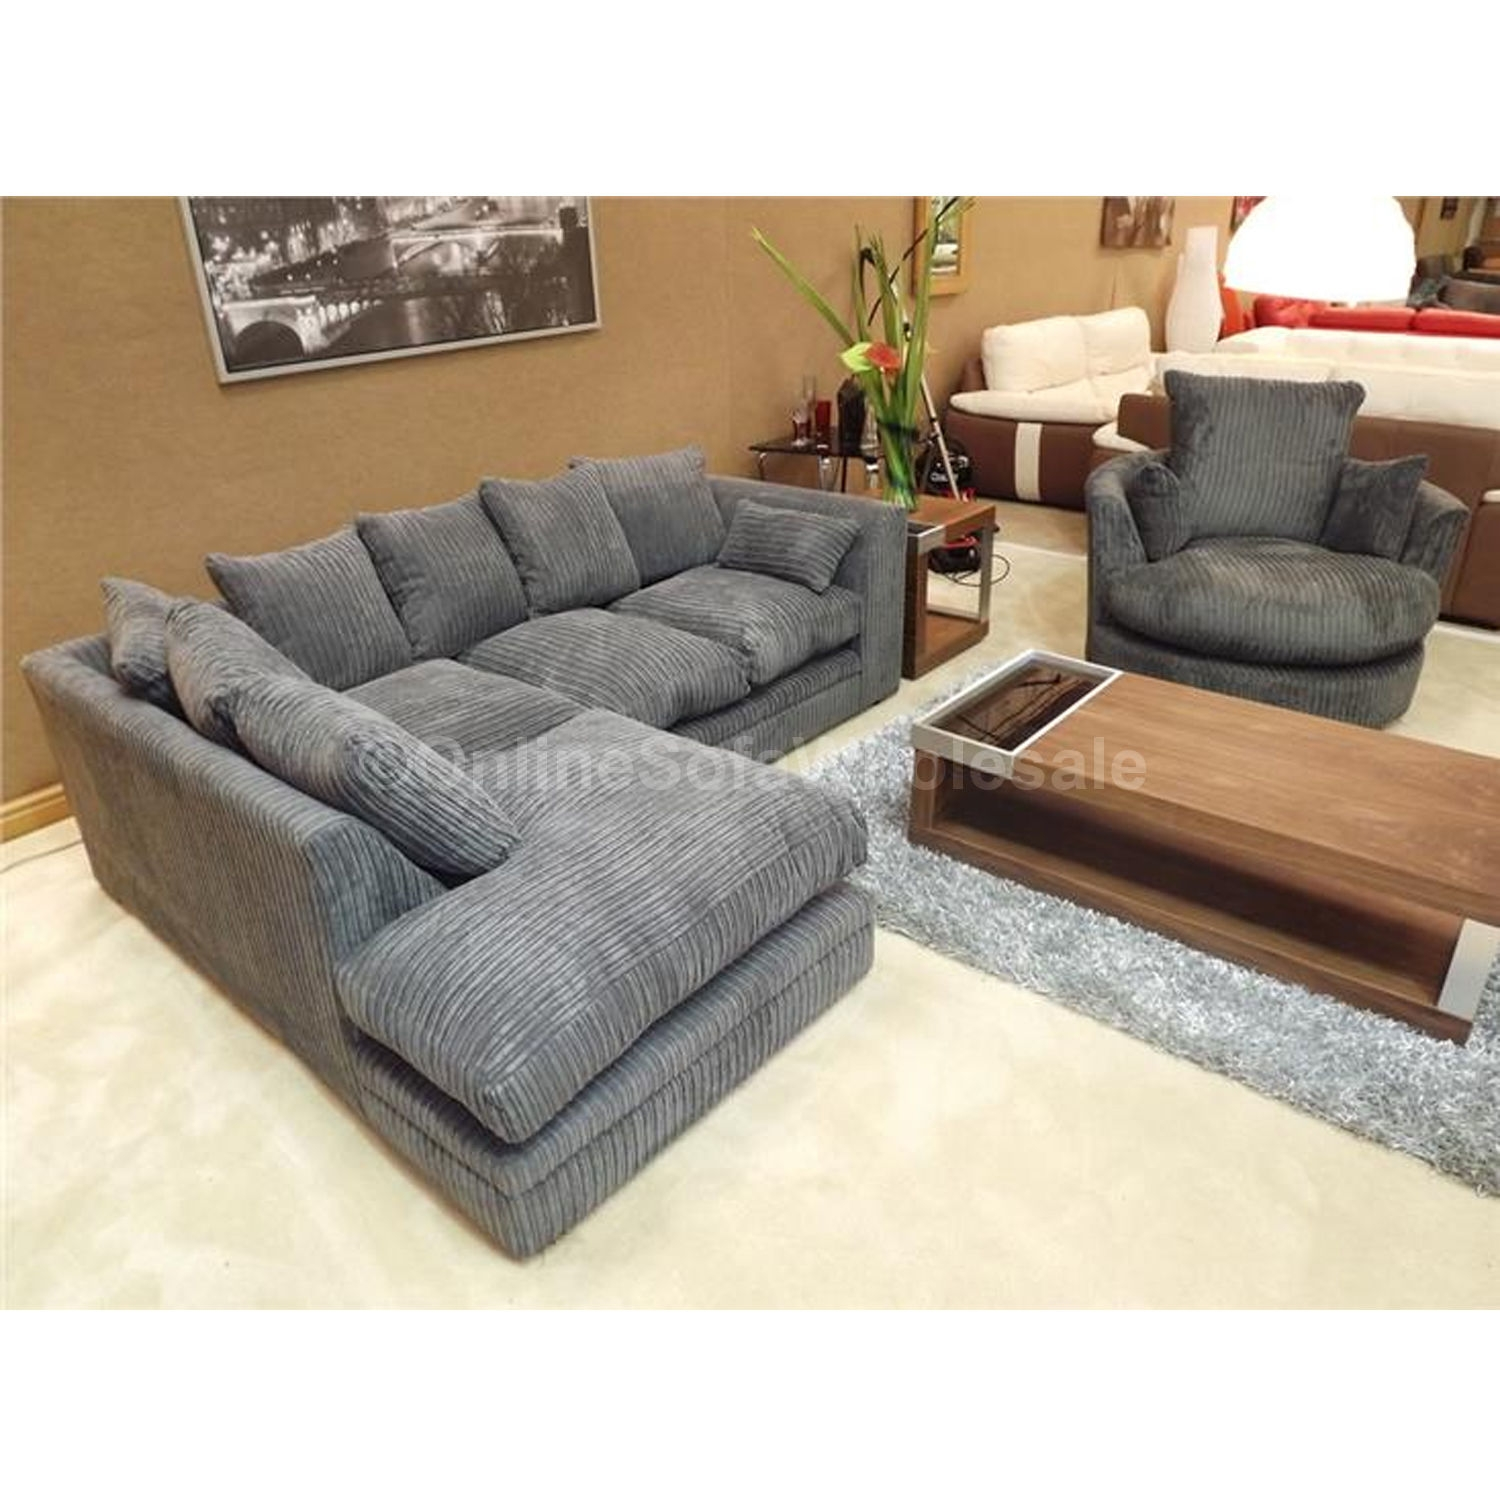 Dfs Brown Sofa And Swivel Chair: Sofa Swivel Chair Large Corner Sofa With Swivel Chair